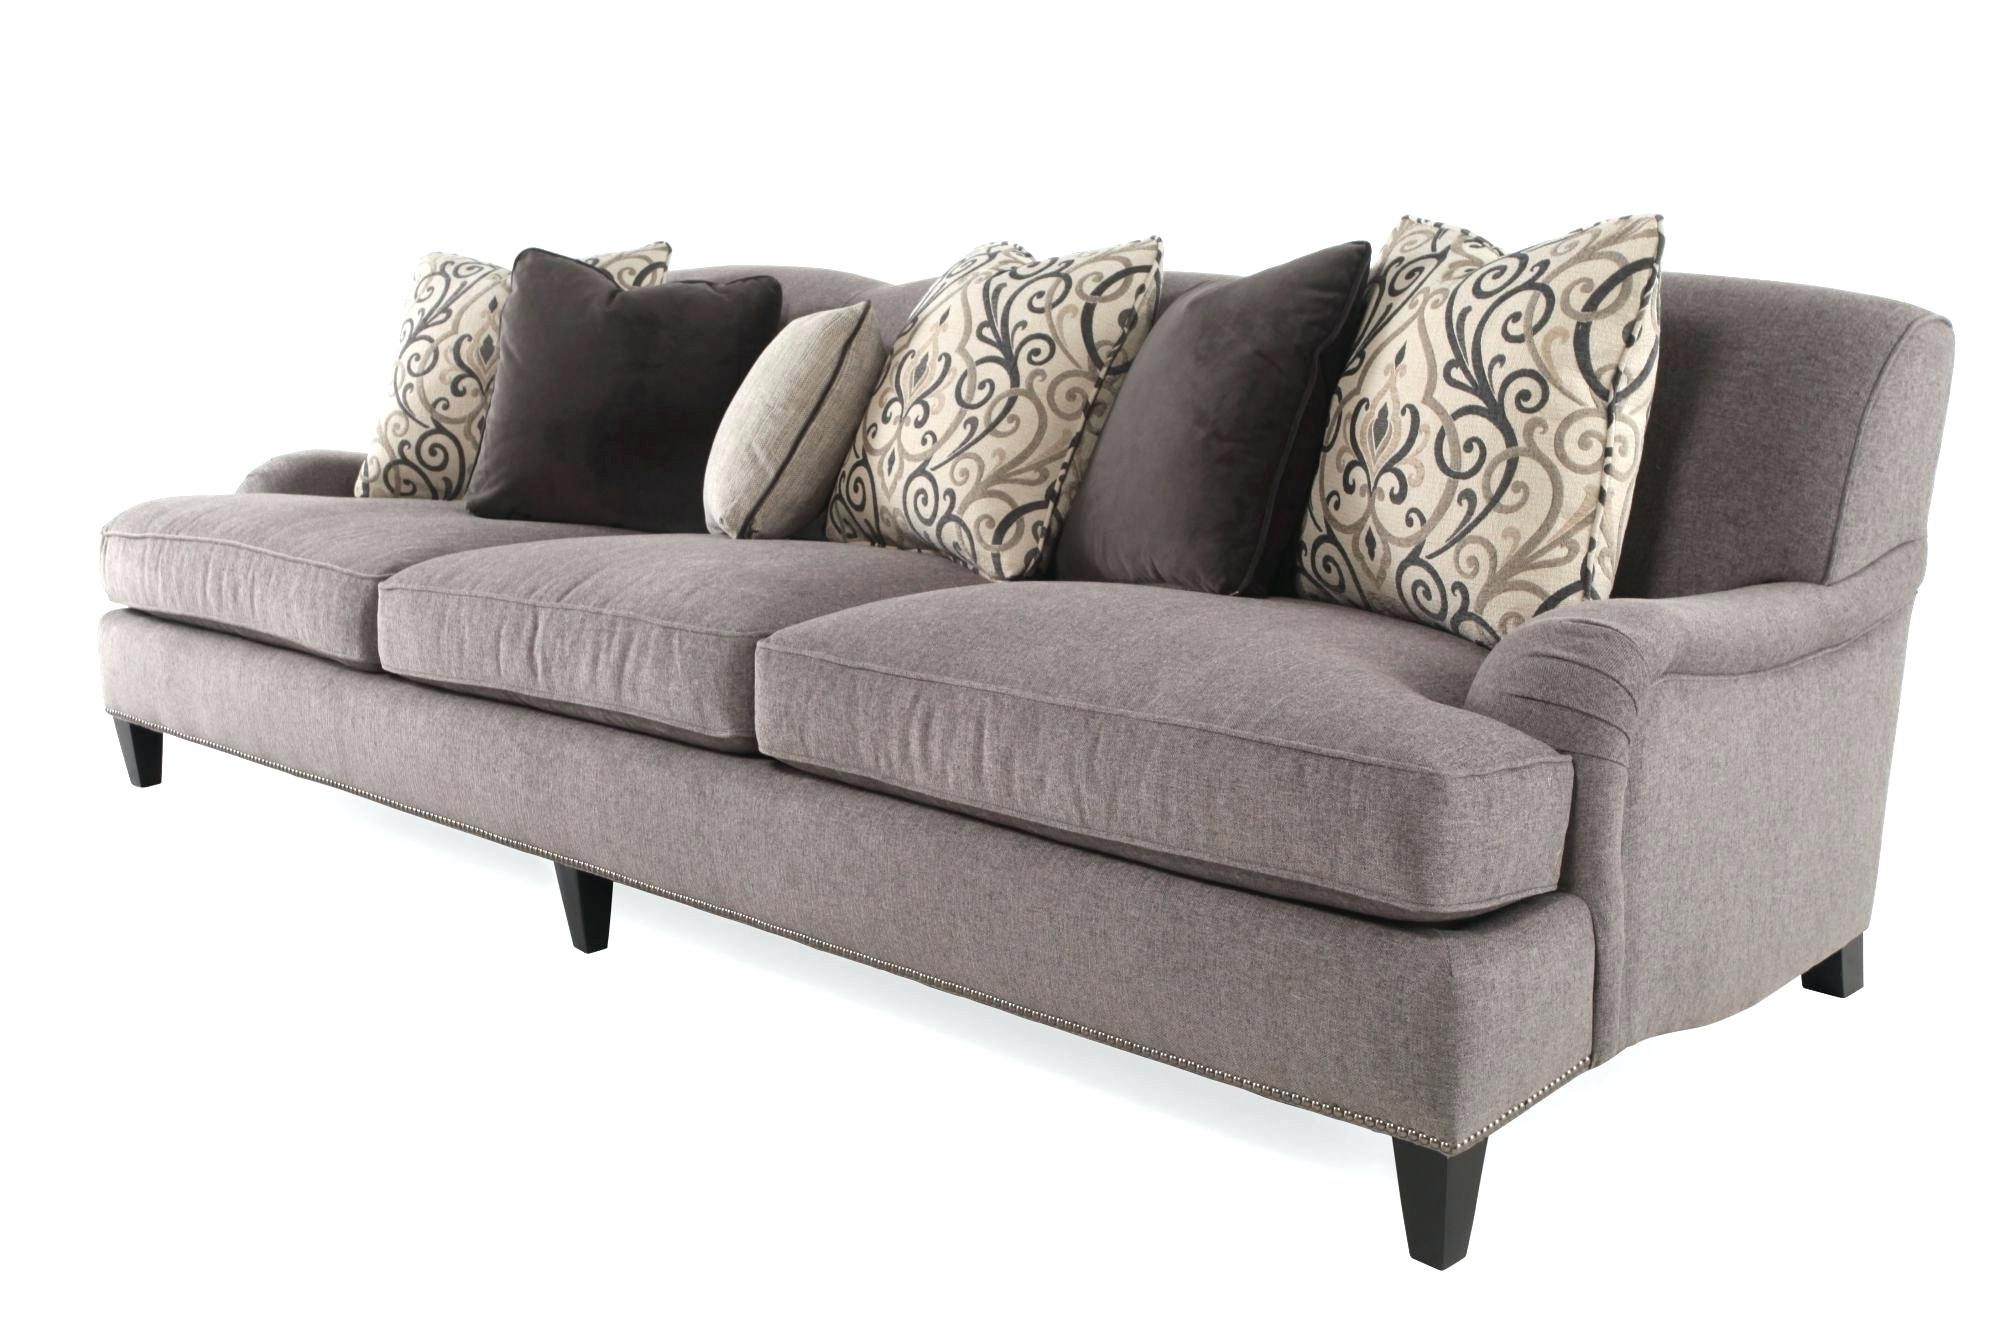 Popular Dillards Sectional Sofas Throughout Bernhardt Sofa Leather And Fabric Alisa Reviews La Paz Table (View 14 of 15)